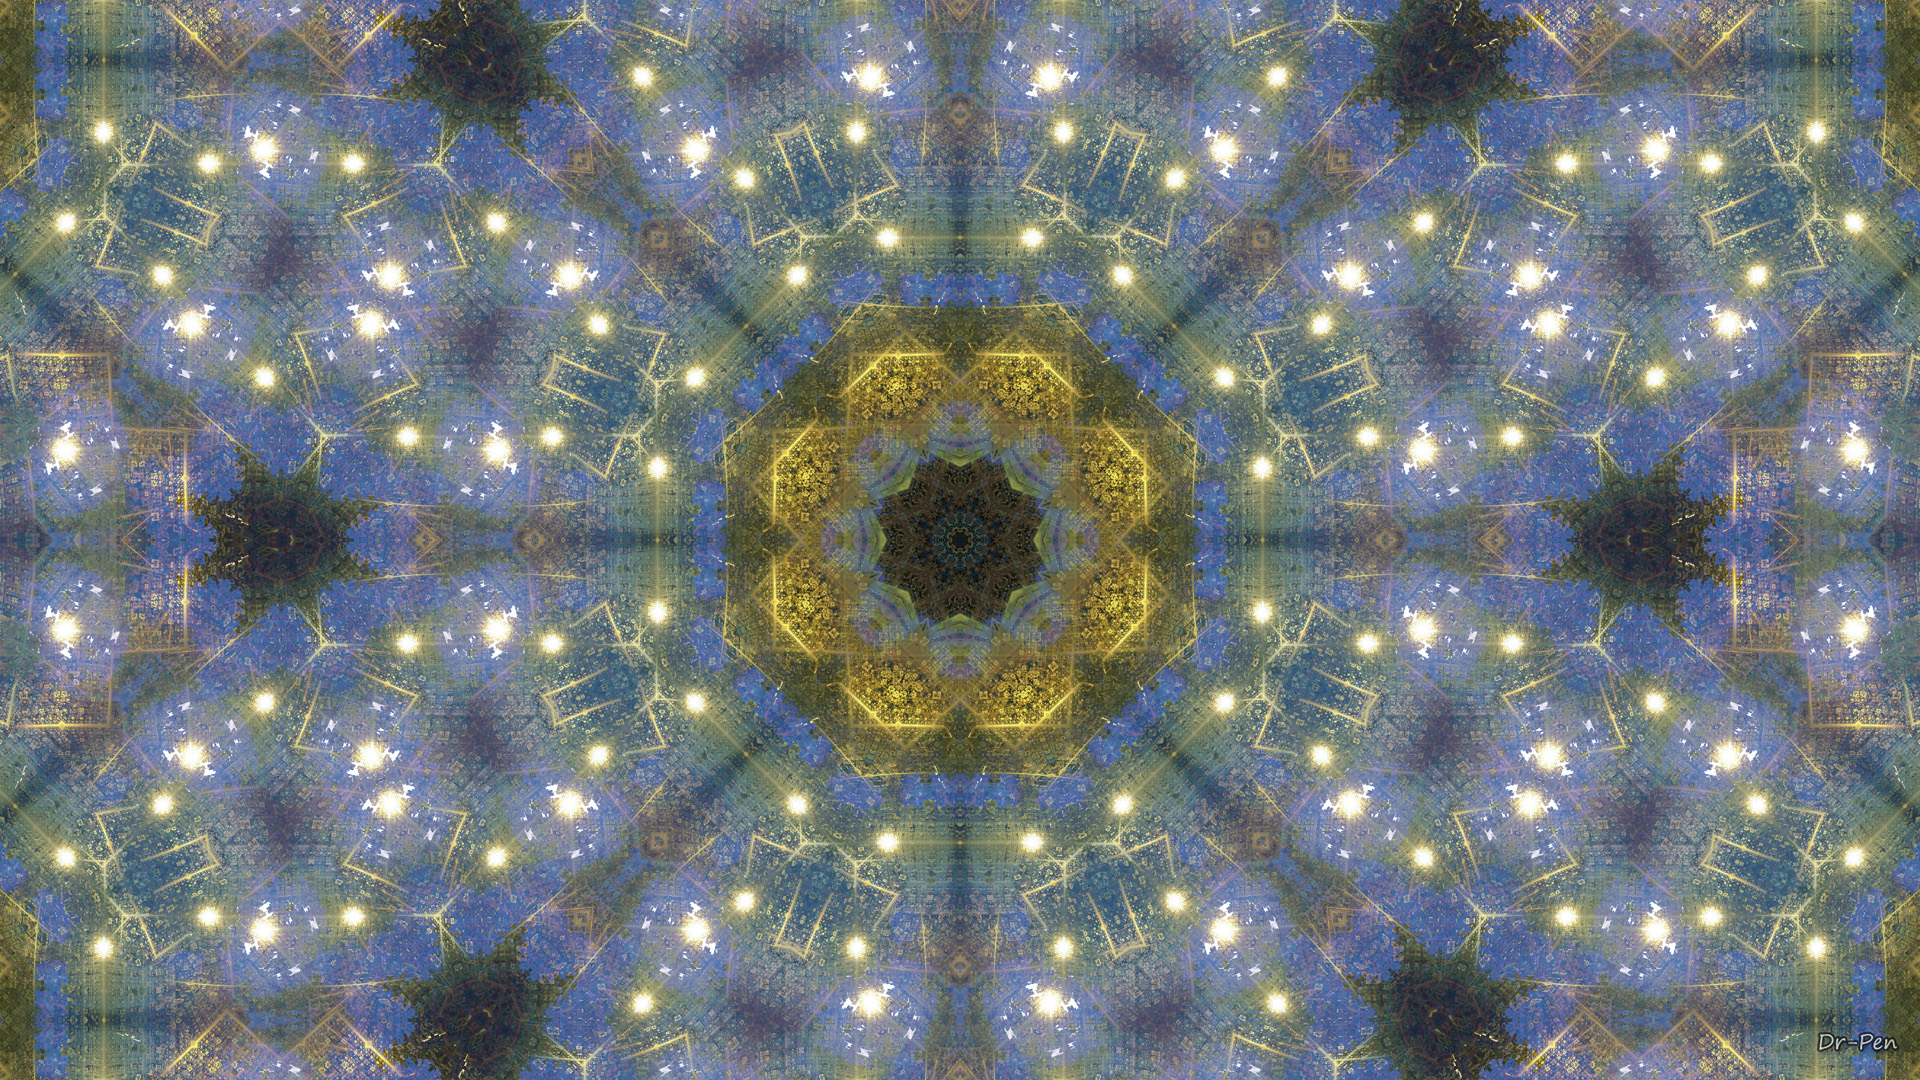 Blue-and-Gold-Mandala-1920x1080-wallpaper-wpc5802916